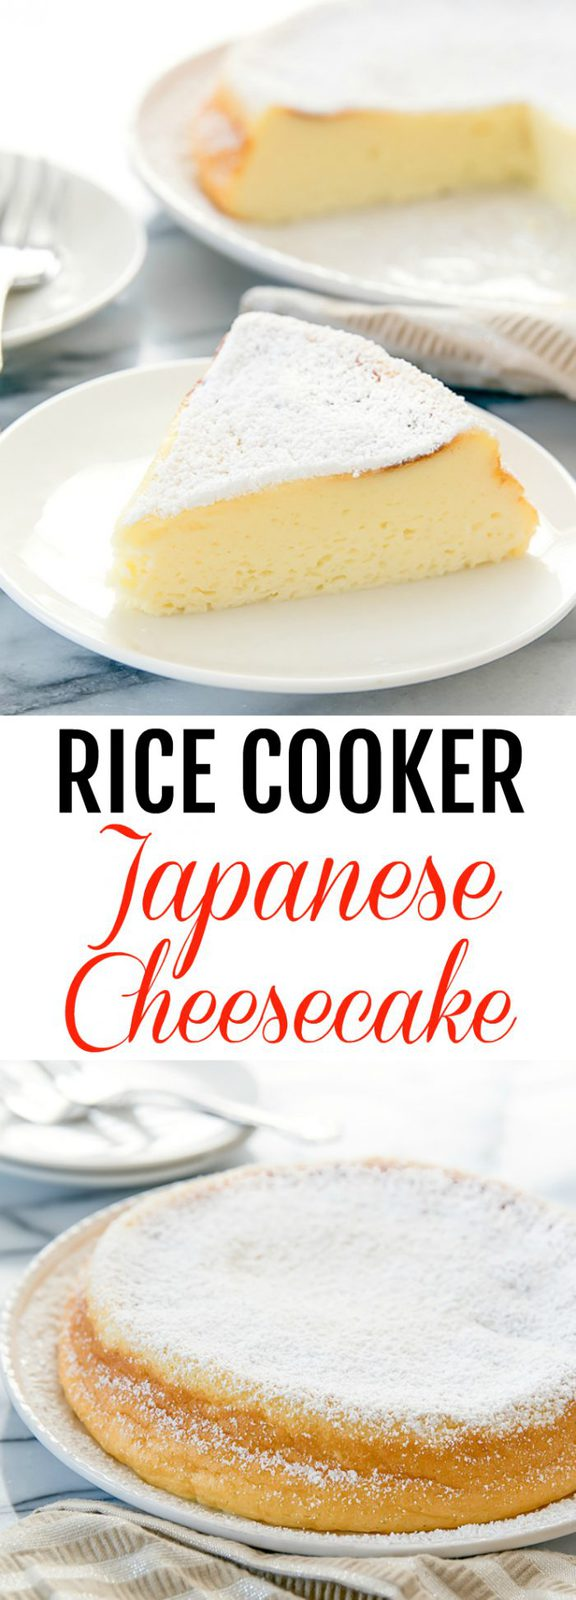 Rice Cooker Japanese Style Cheesecake